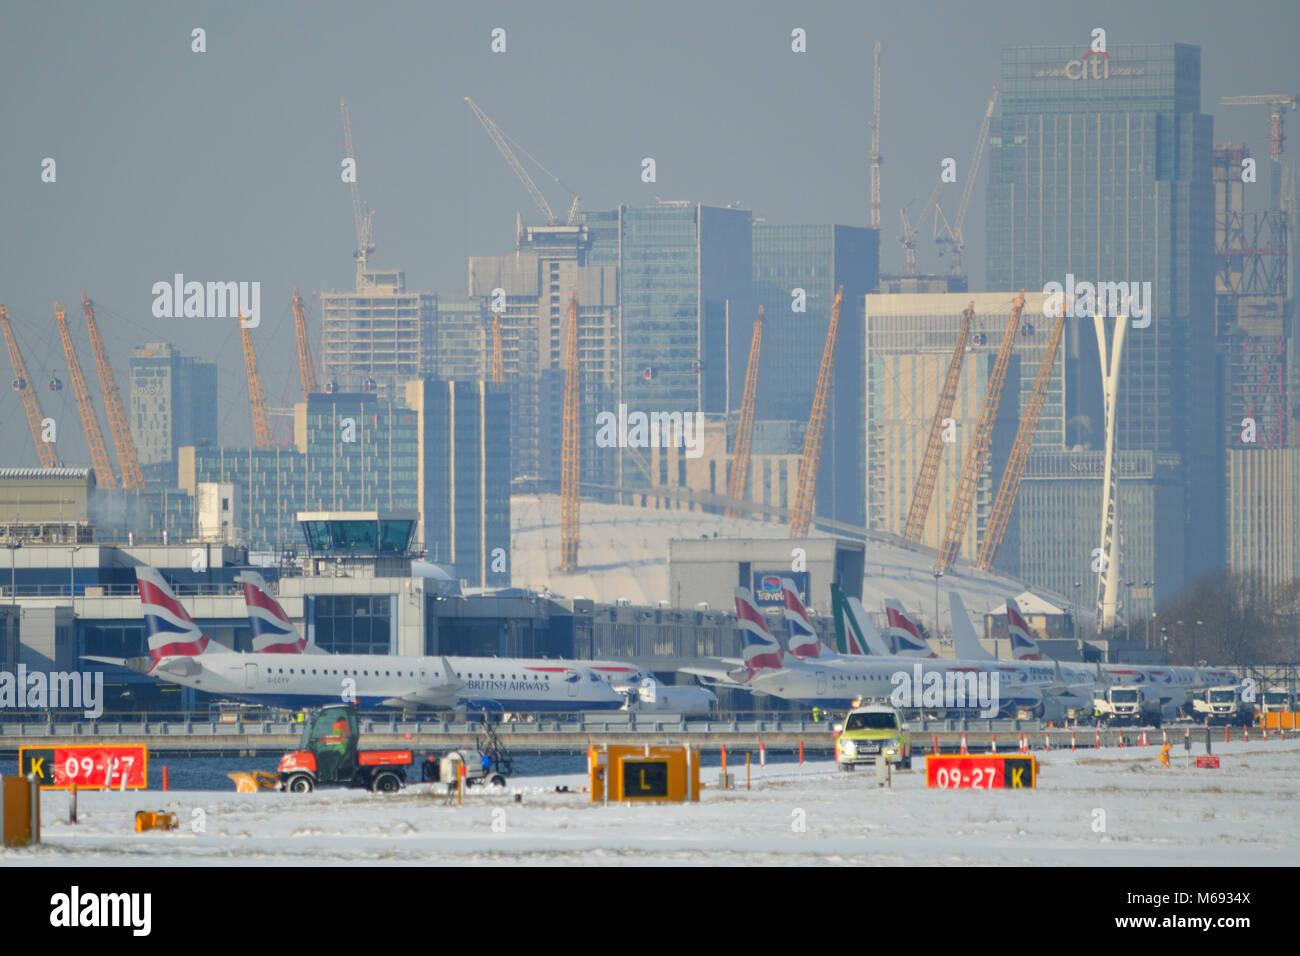 Snow disrupting flights at London City Airport in East London due to snow that was part of #BeastfromtheEast winter - Stock Image